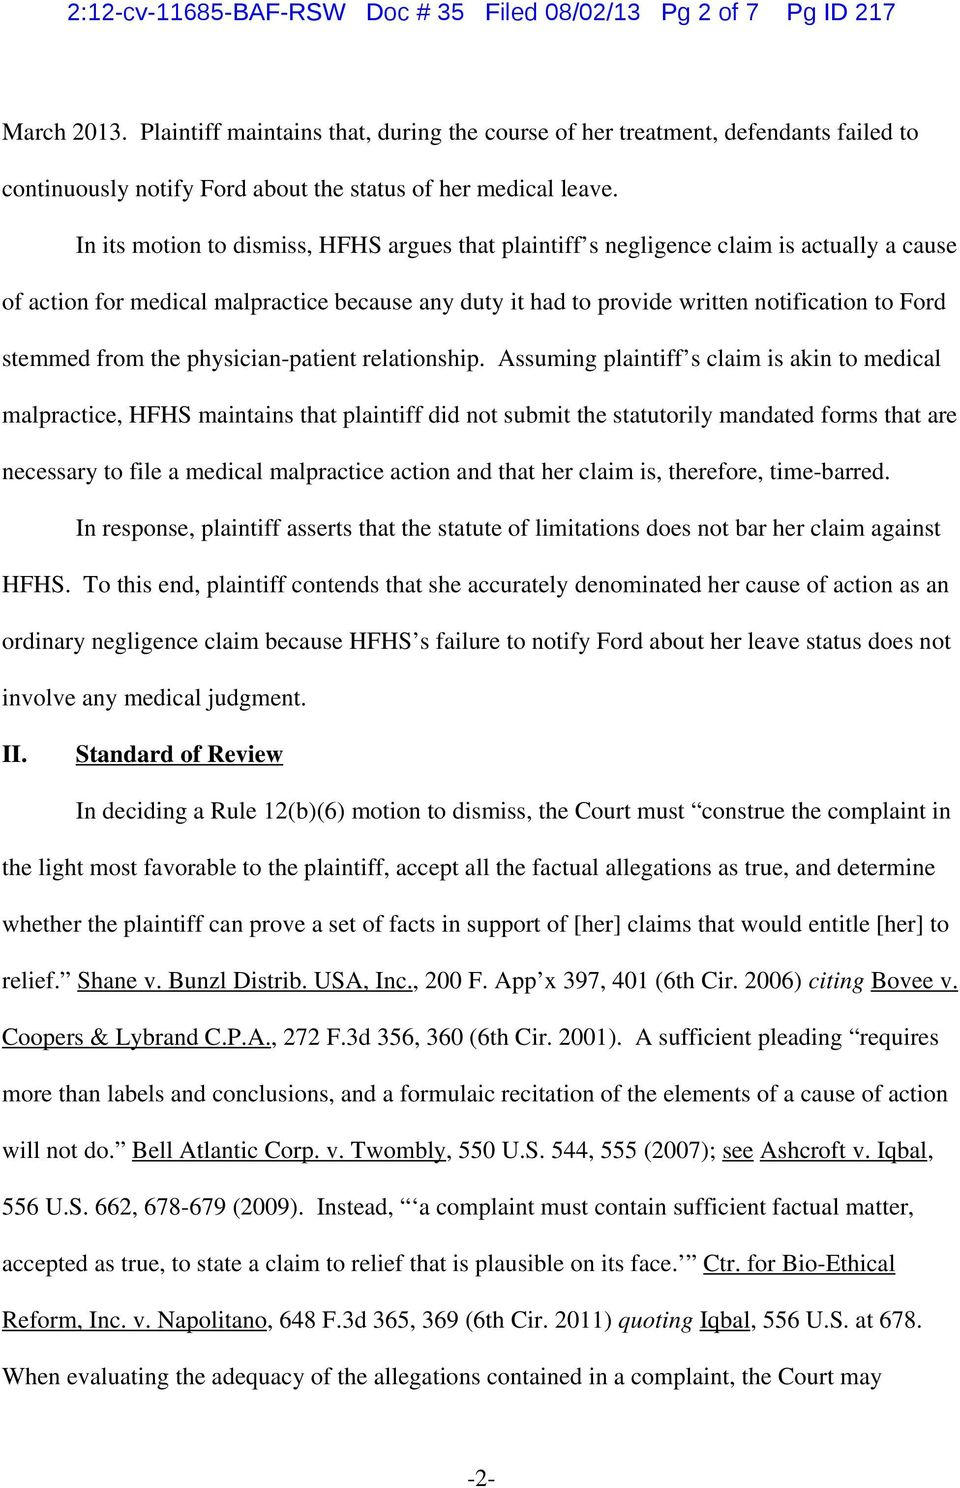 In its motion to dismiss, HFHS argues that plaintiff s negligence claim is actually a cause of action for medical malpractice because any duty it had to provide written notification to Ford stemmed